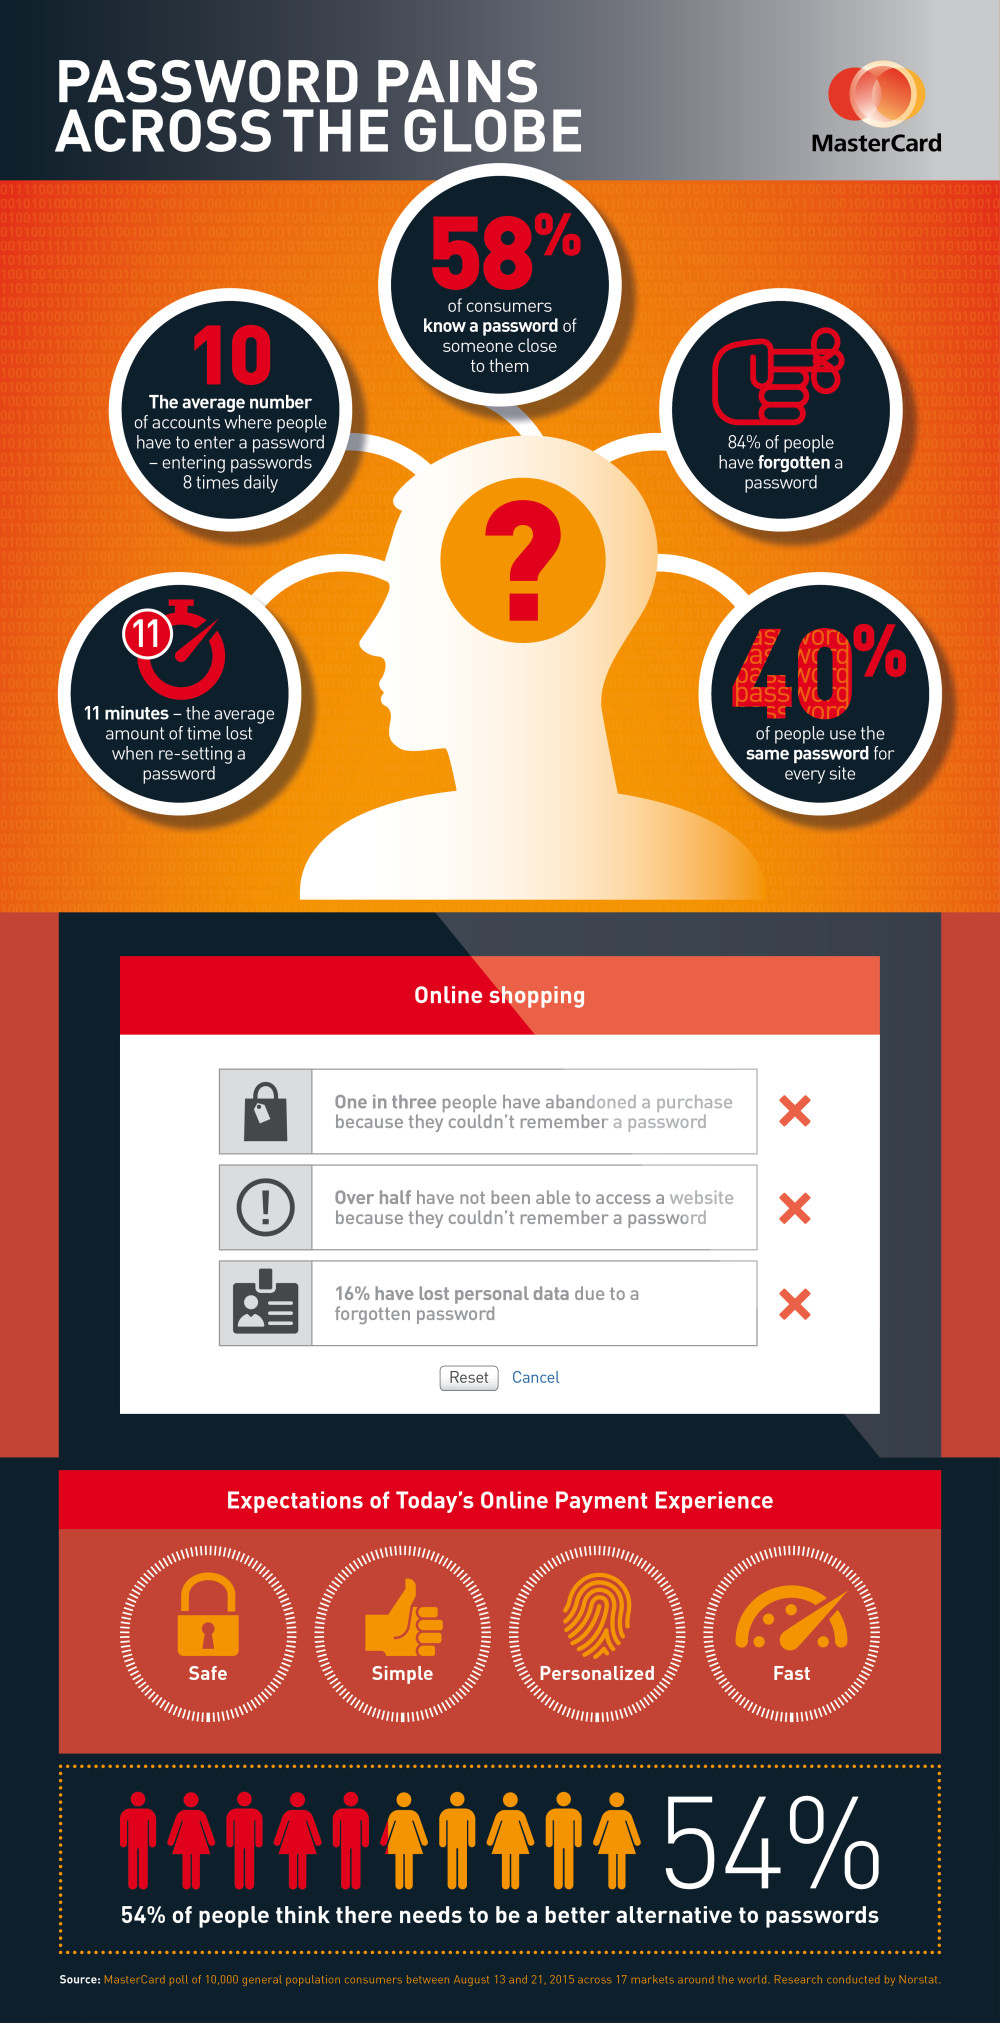 mastercard-password-infographic-artwork-004